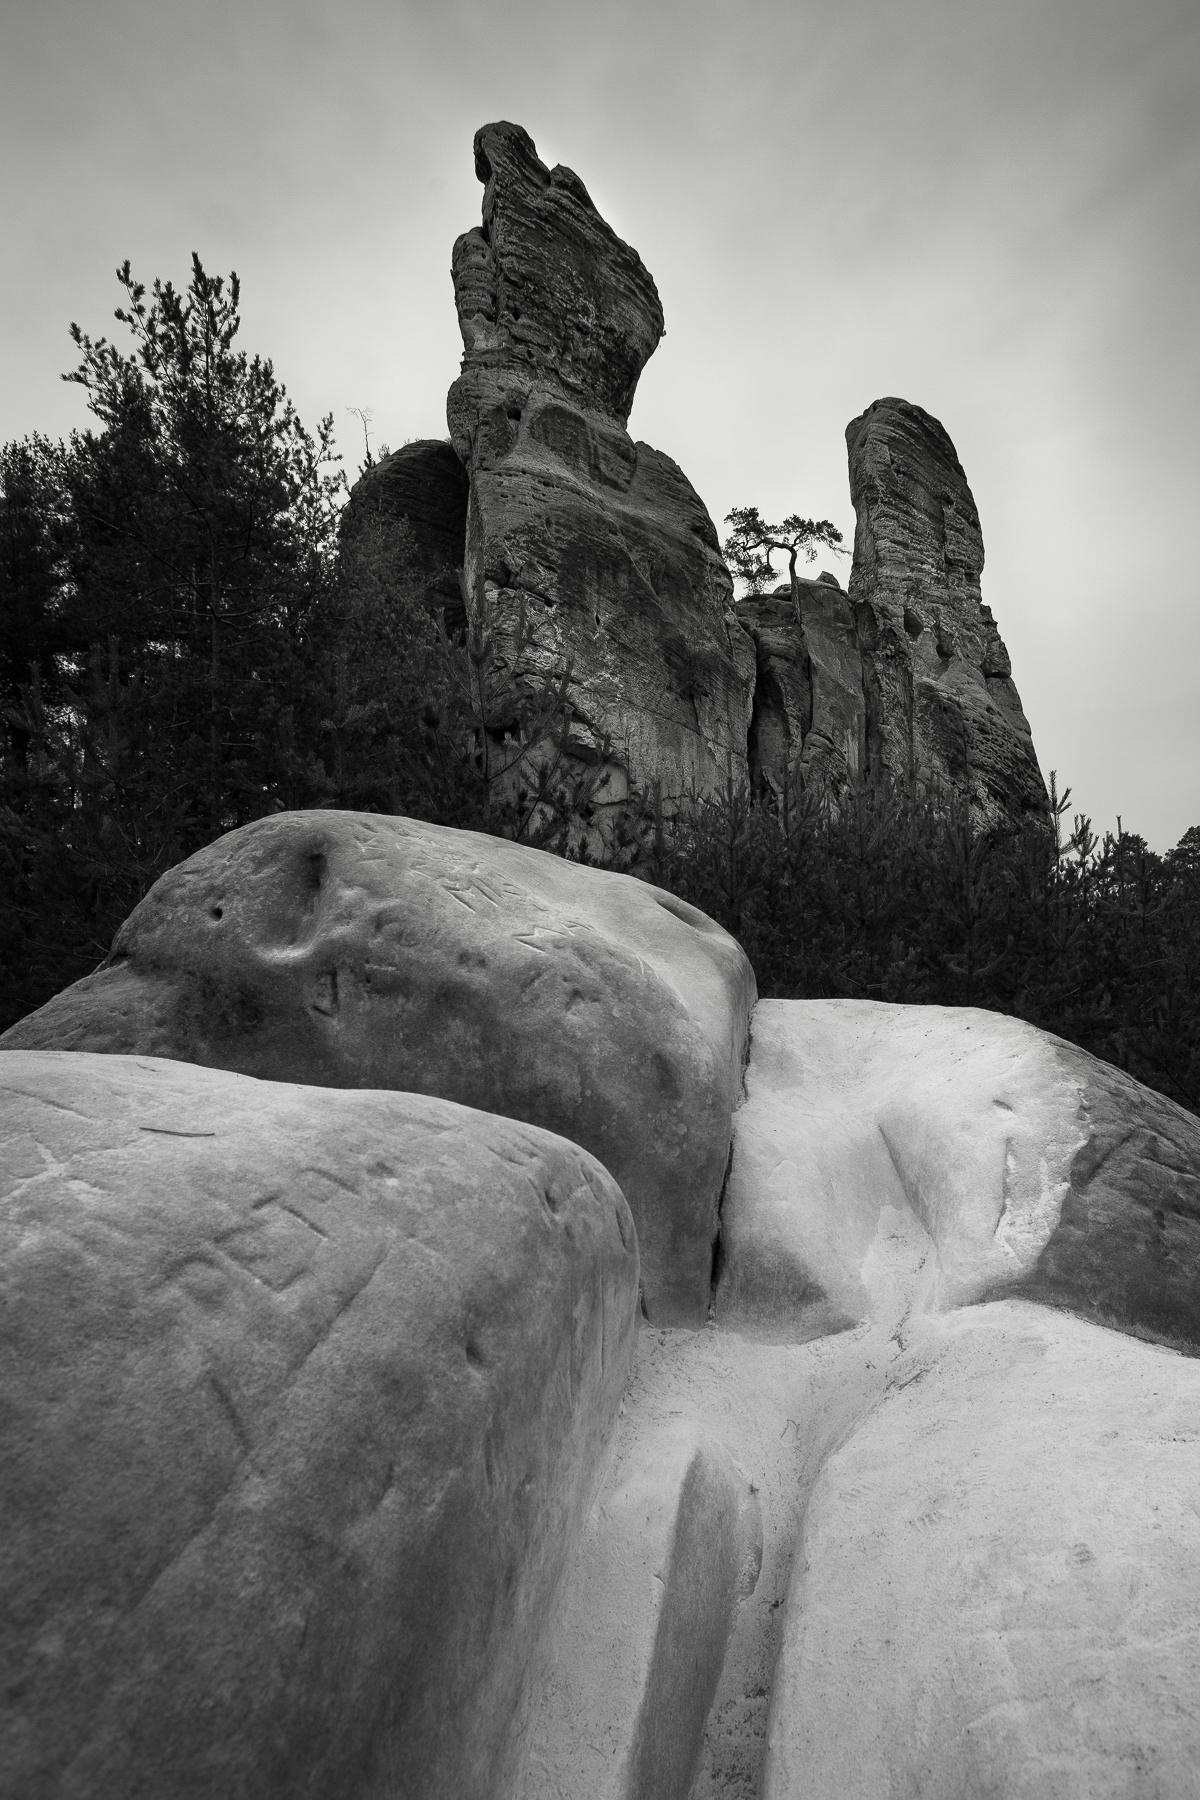 Hruba Skala monolithic rocks. Photo taken during winter photo workshop in Bohemia.